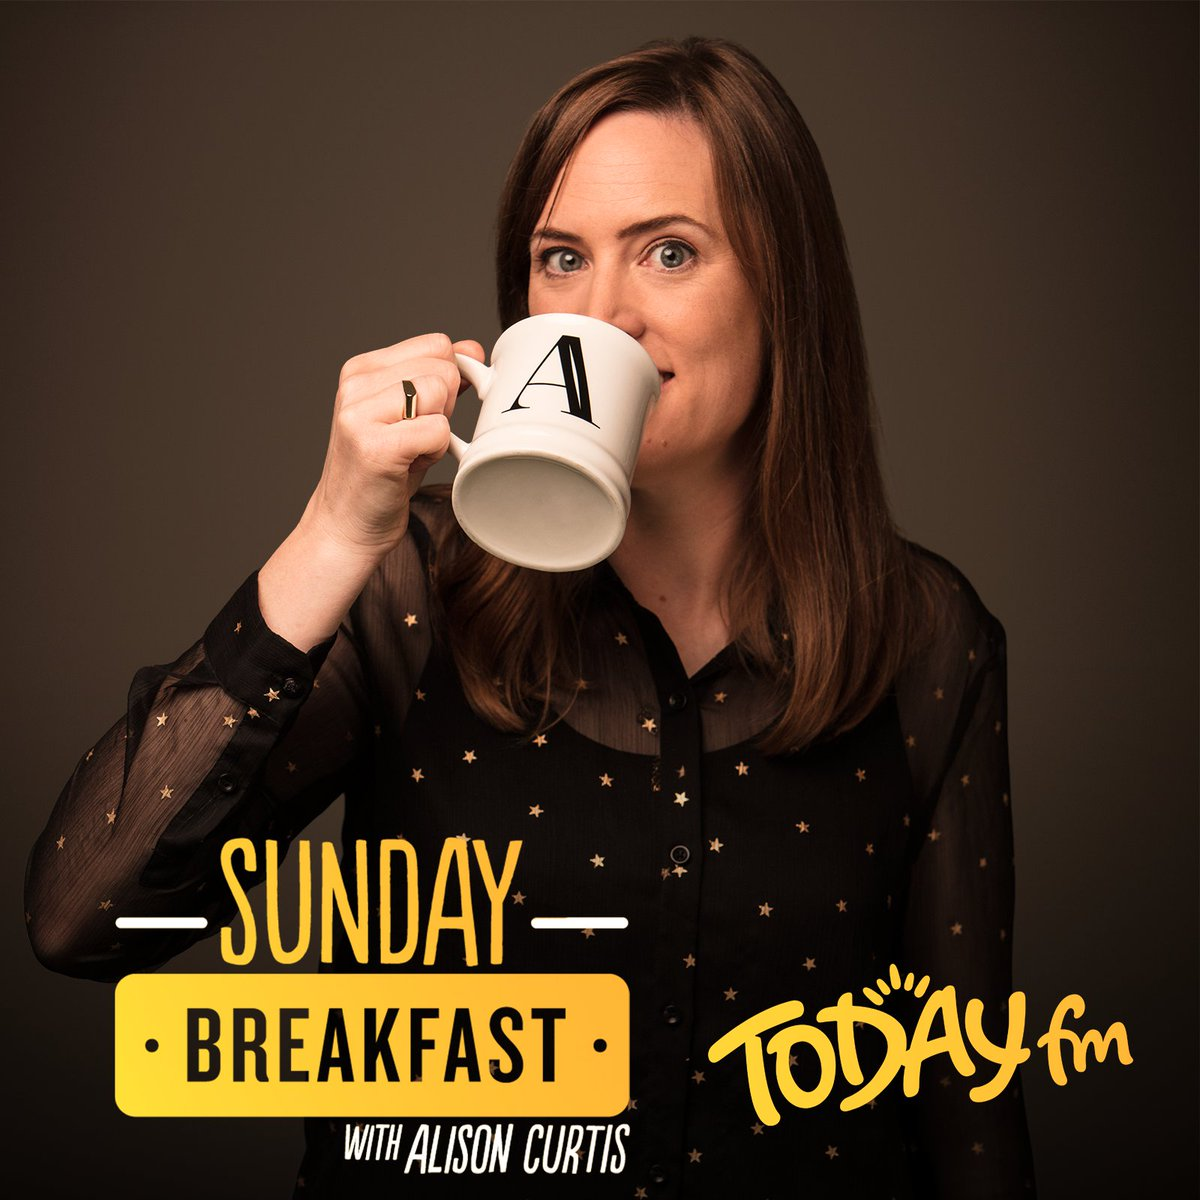 Time for #WeekendBreakfast with @AlisonTodayFM  Coming up:  - Will be chatting to the winner of the @Foroige Awards   - Reminiscing Sex and the City as the series turns 20!  - Another chance to win @taylorswift13  tix!  - AND @StefPreissner  will be here!  https://t.co/0Hqa5hNuEr